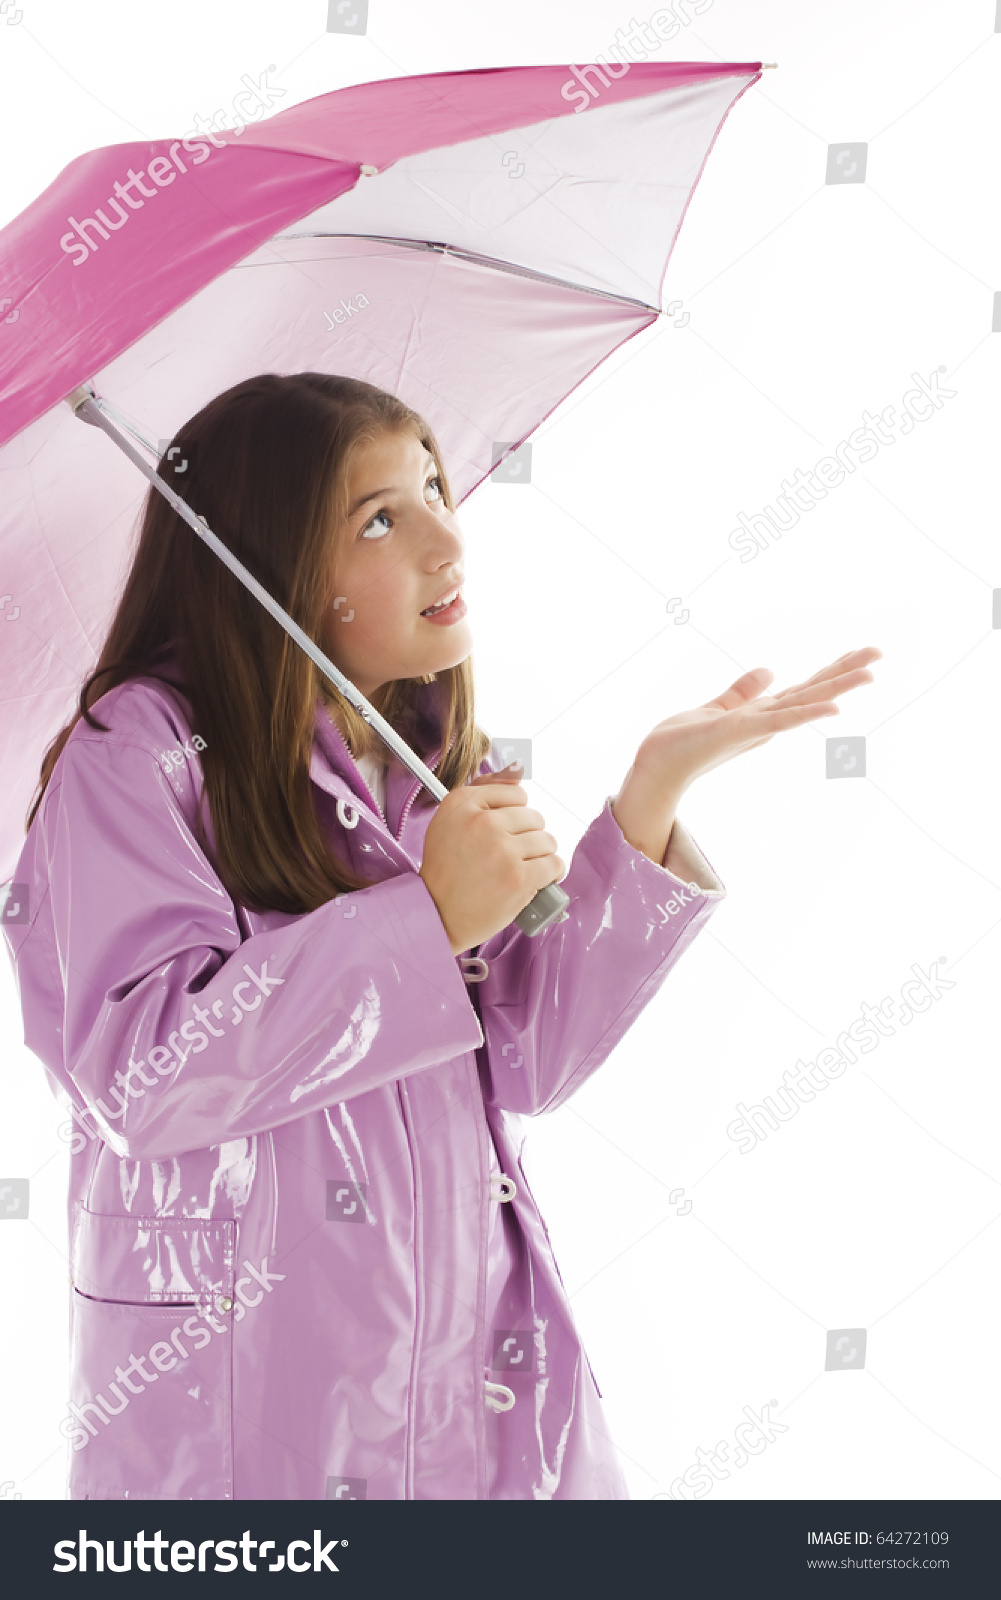 Pretty Young Girl Raincoat Holding Umbrella Stock Photo 64272109